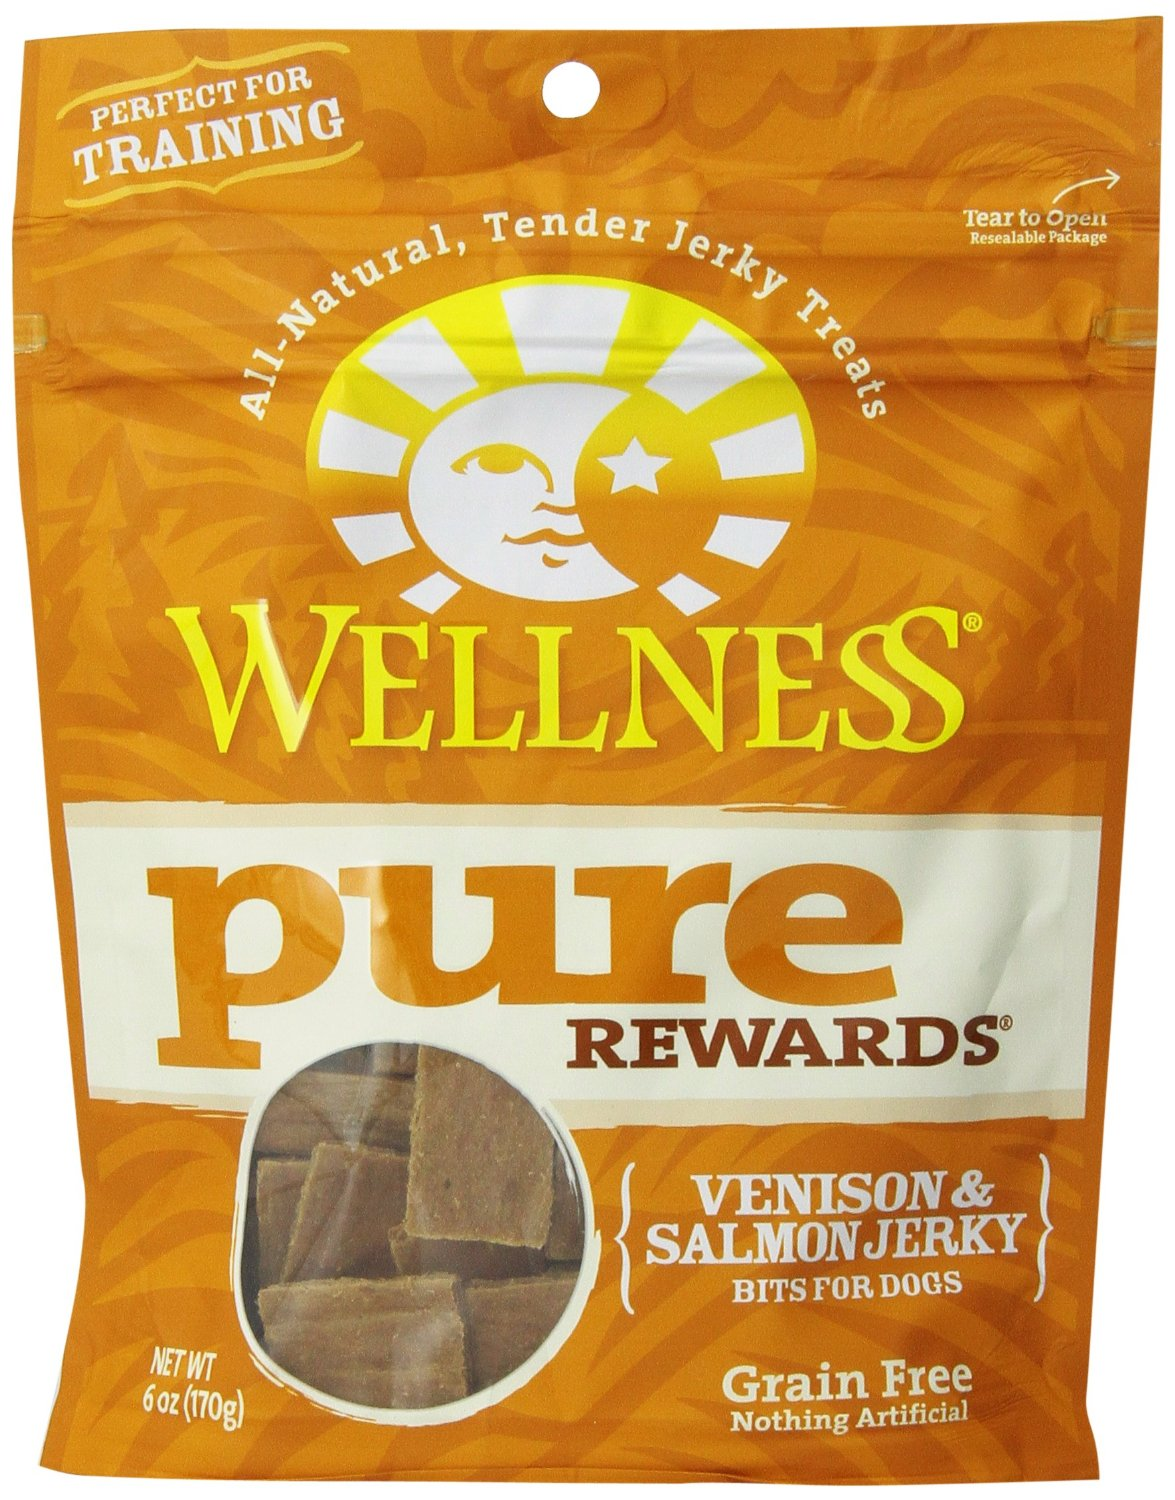 Pure Rewards Venison & Salmon Jerky